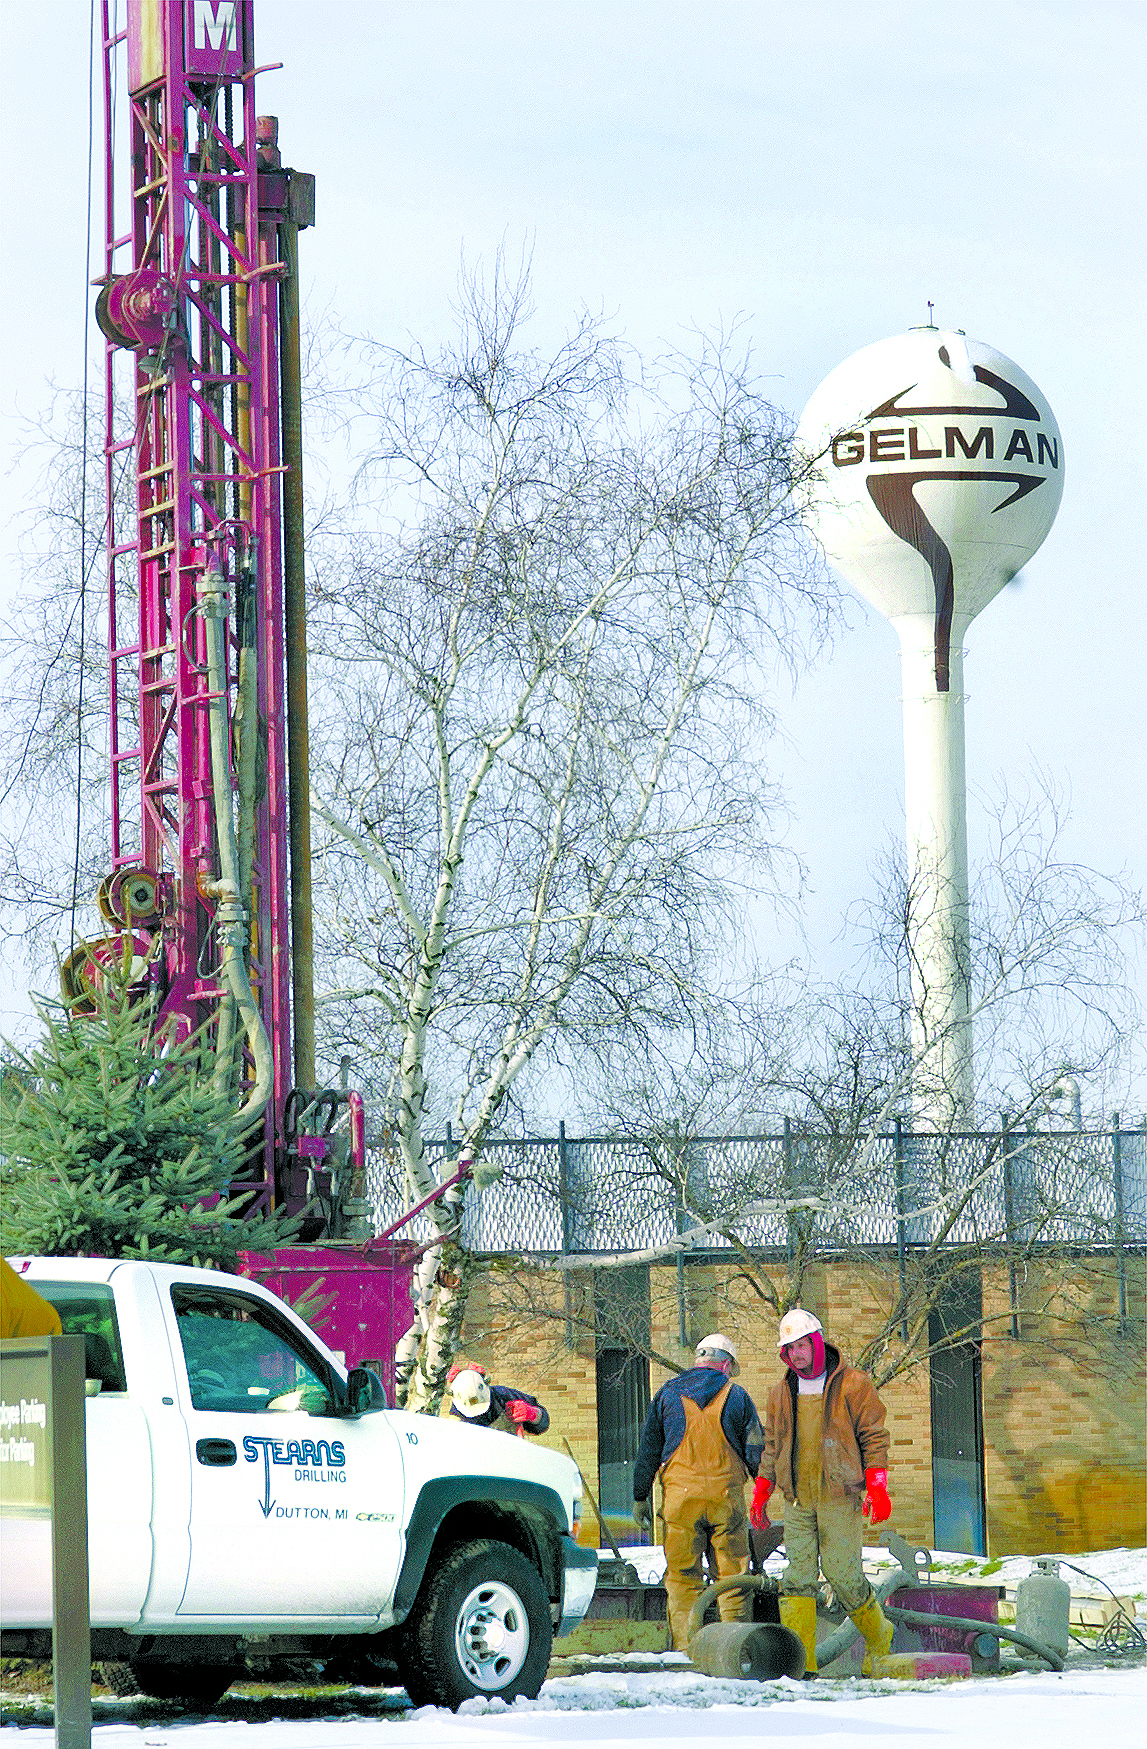 Workers drill well at Pall Life Sciences plant, January 2002 image